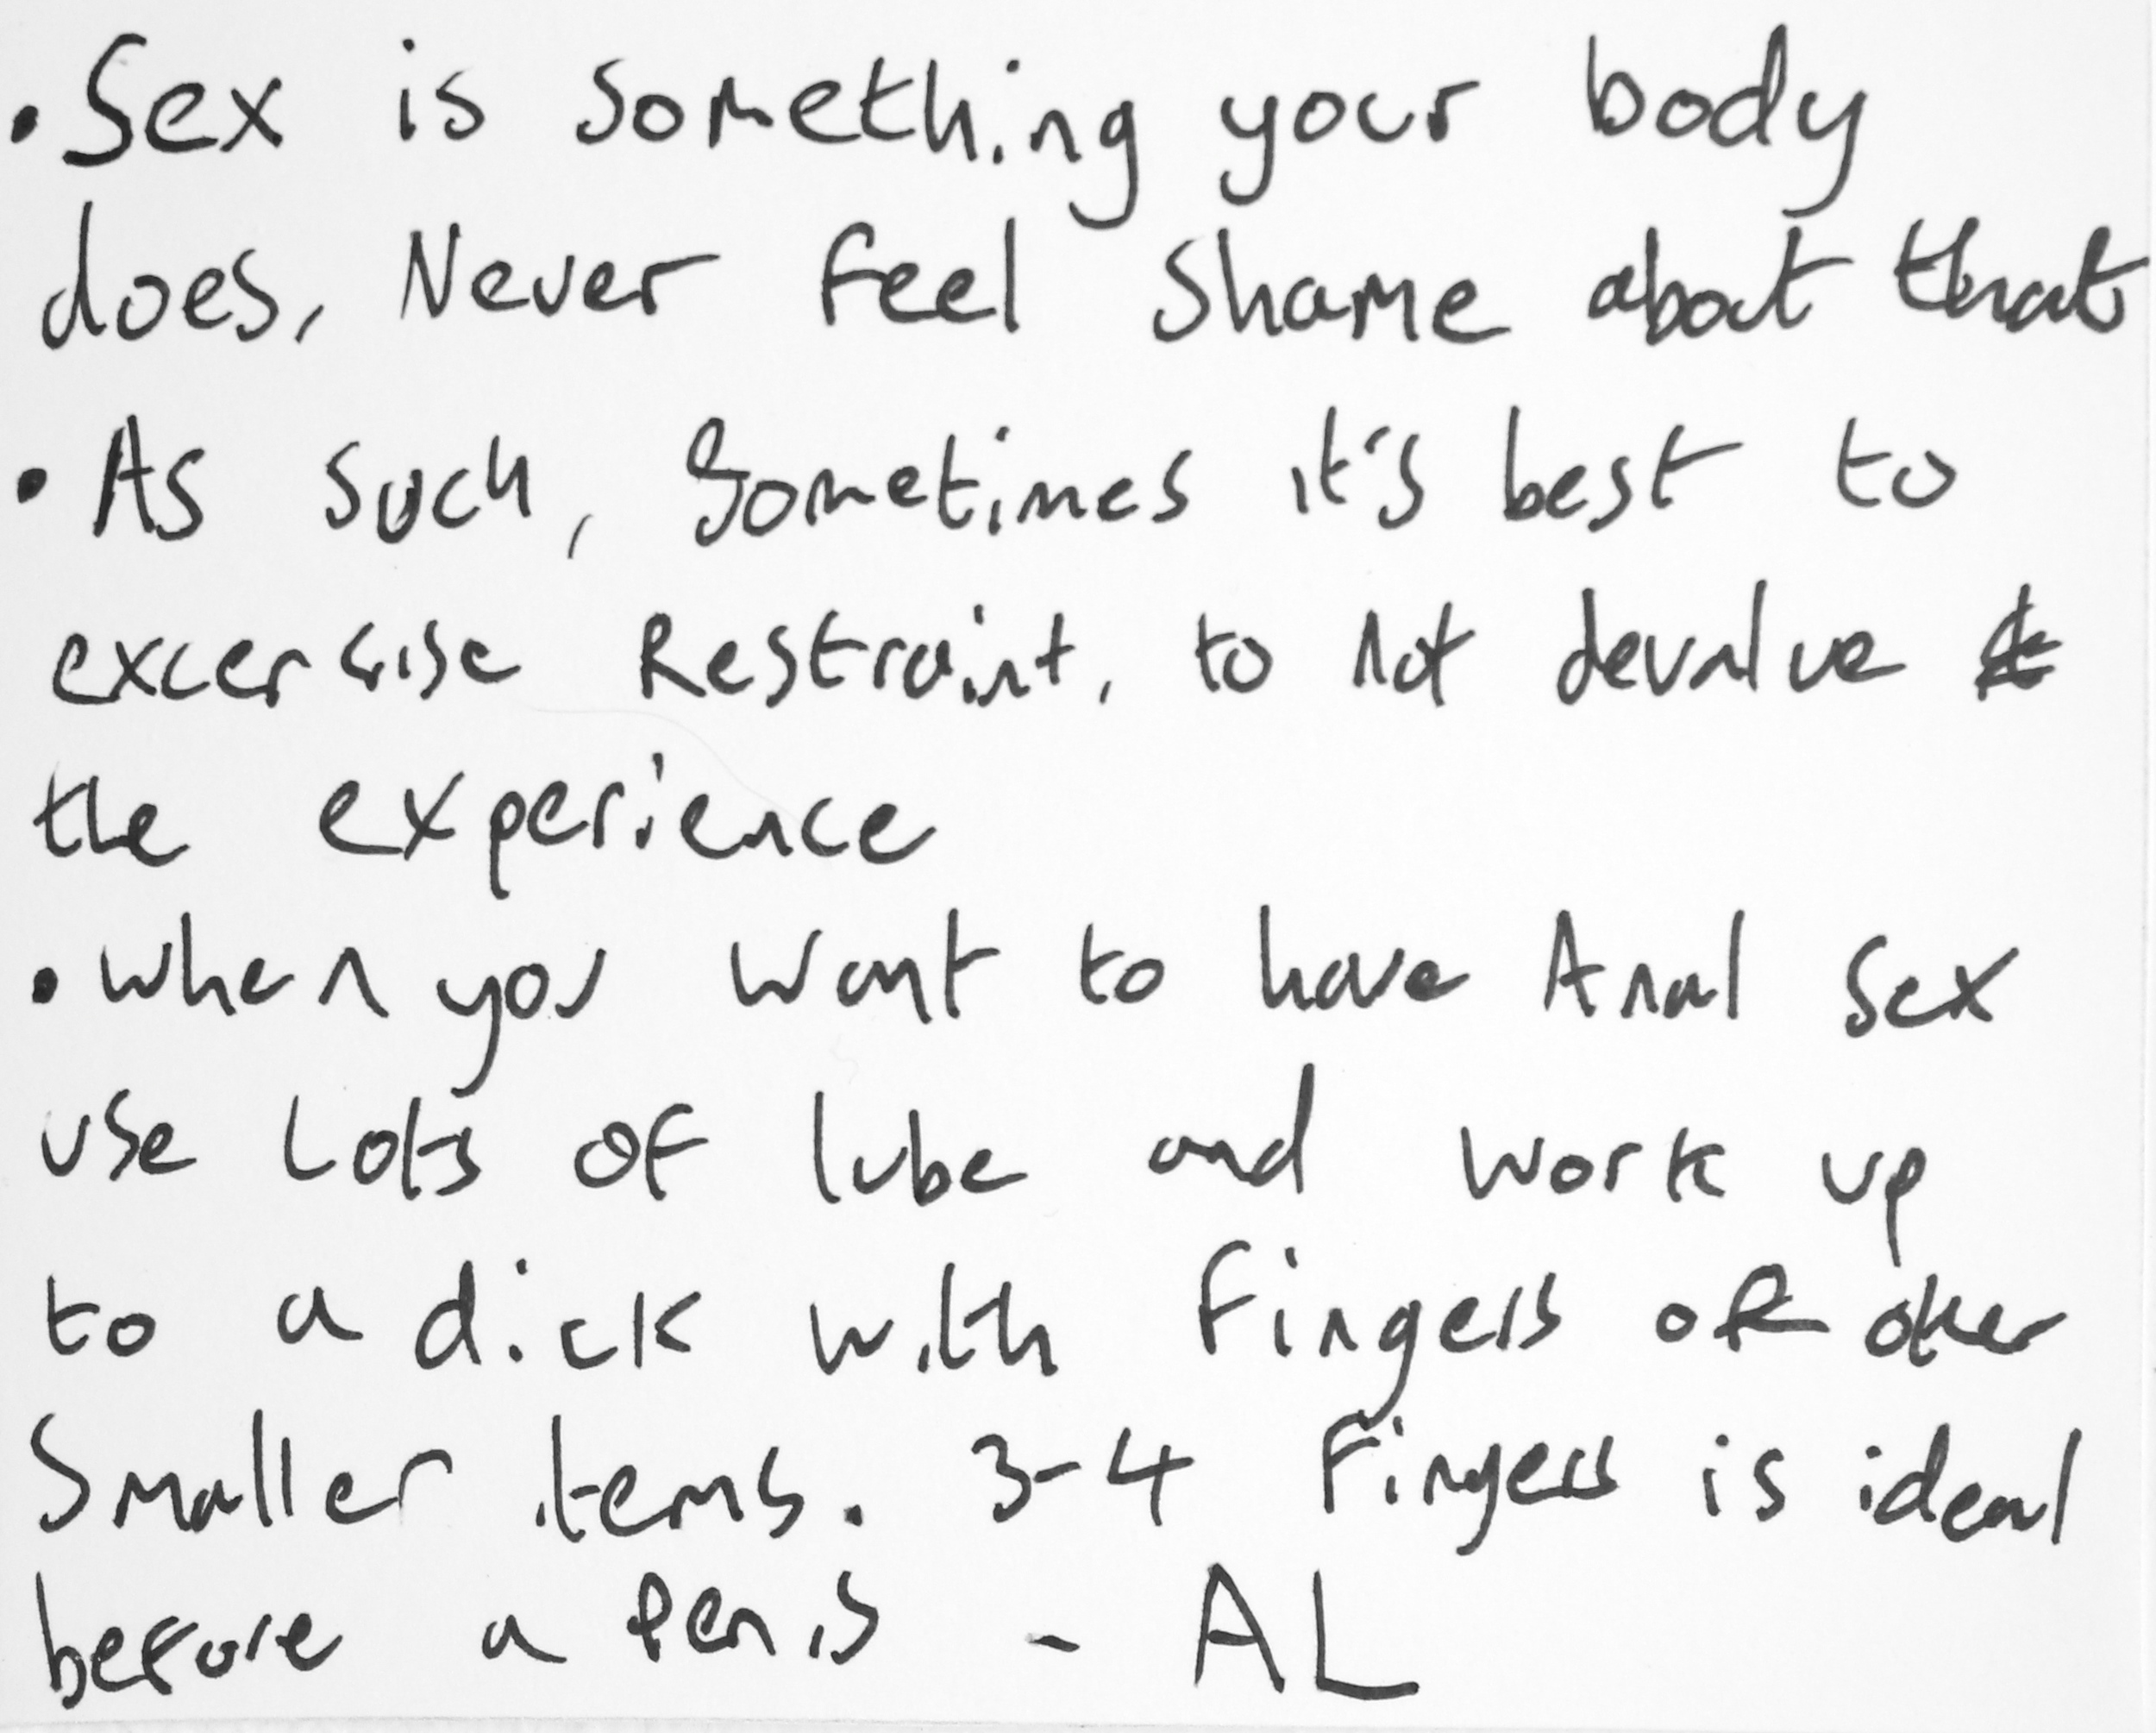 -Sex is something your body does. Never feel shame about that.  -As such, sometimes it's best to exercise restraint, to not devalue the experience.  -When you want to have anal sex use lots of lube and work up to a dick with fingers or other smaller items. 3-4 fingers is ideal before a penis. -Al